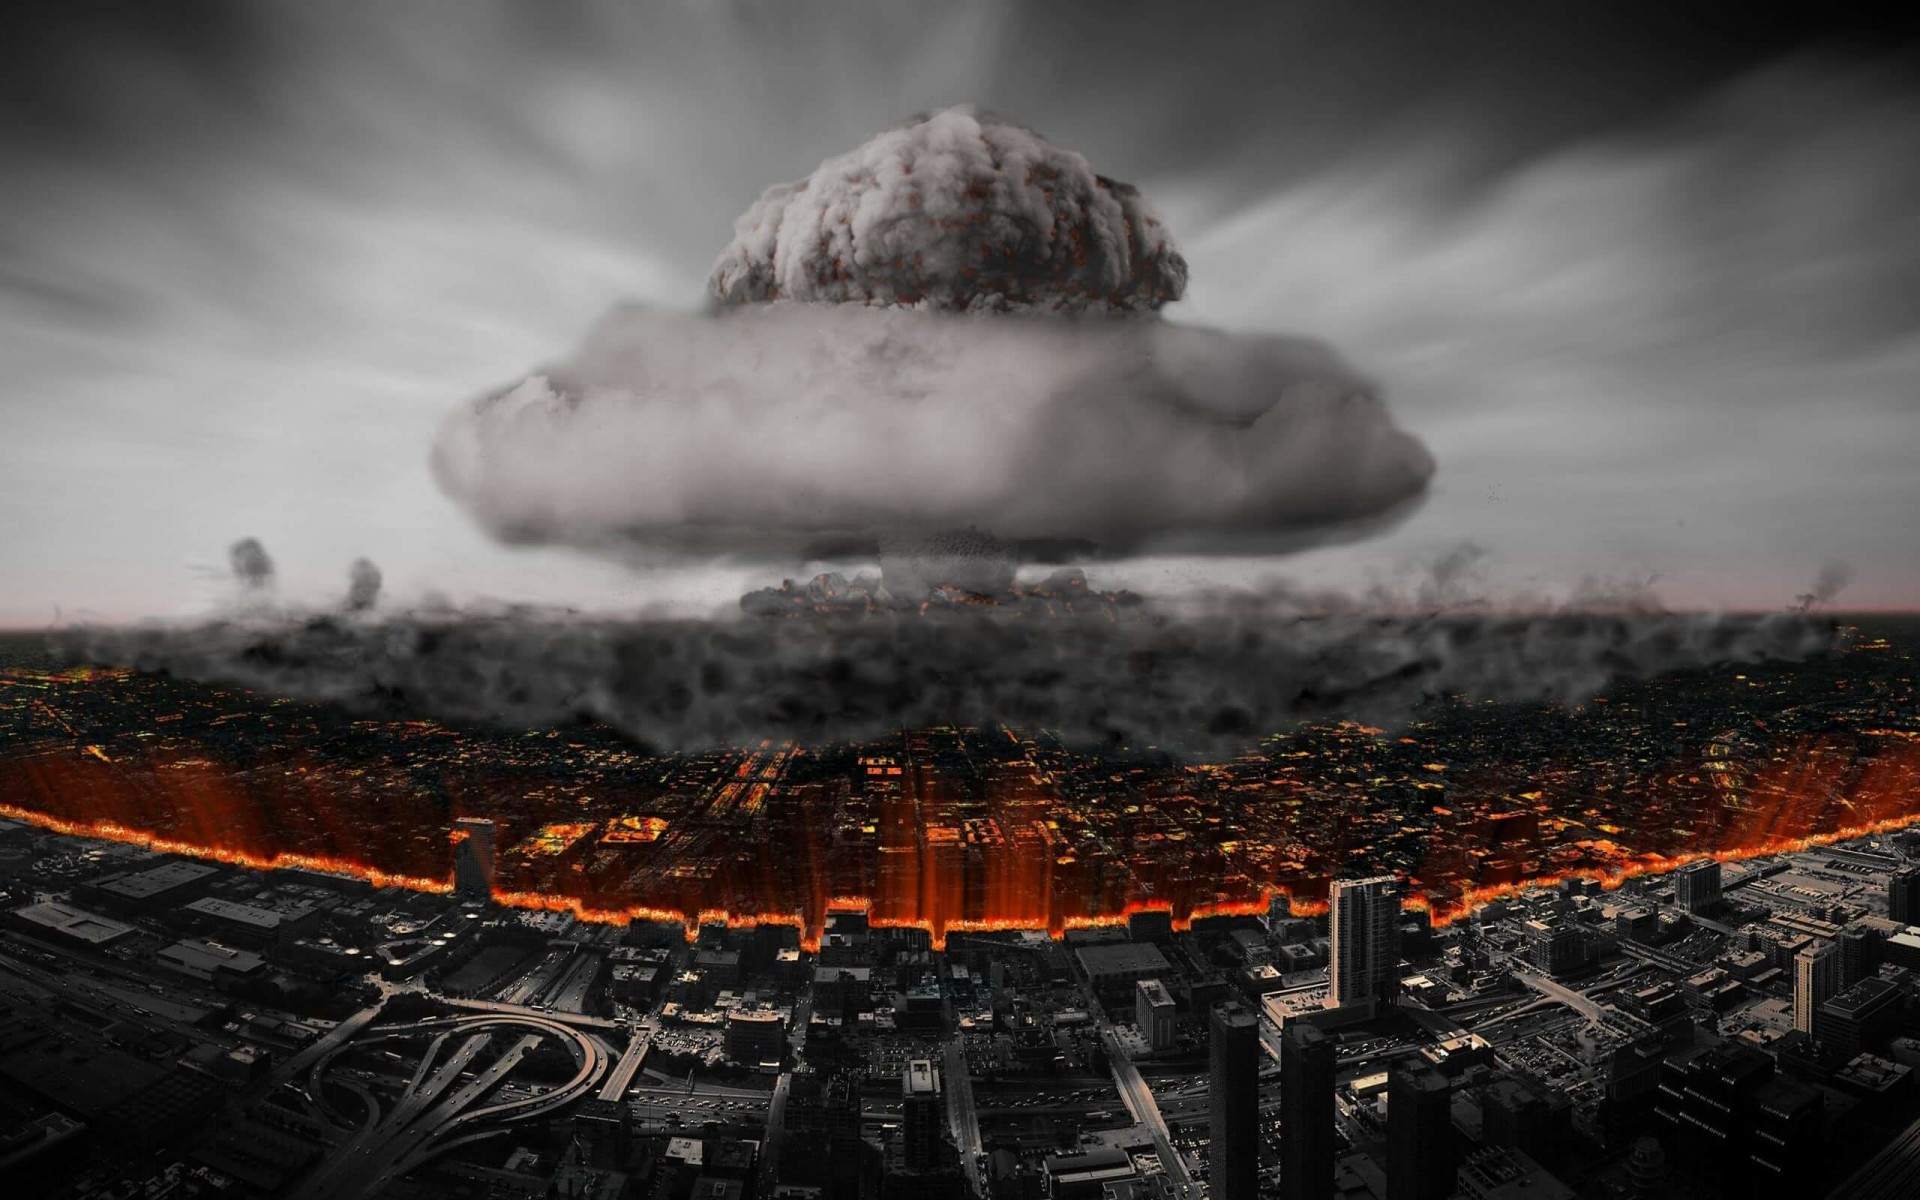 Nuclear Mushroom Cloud Wallpaper for Desktop 1920x1200